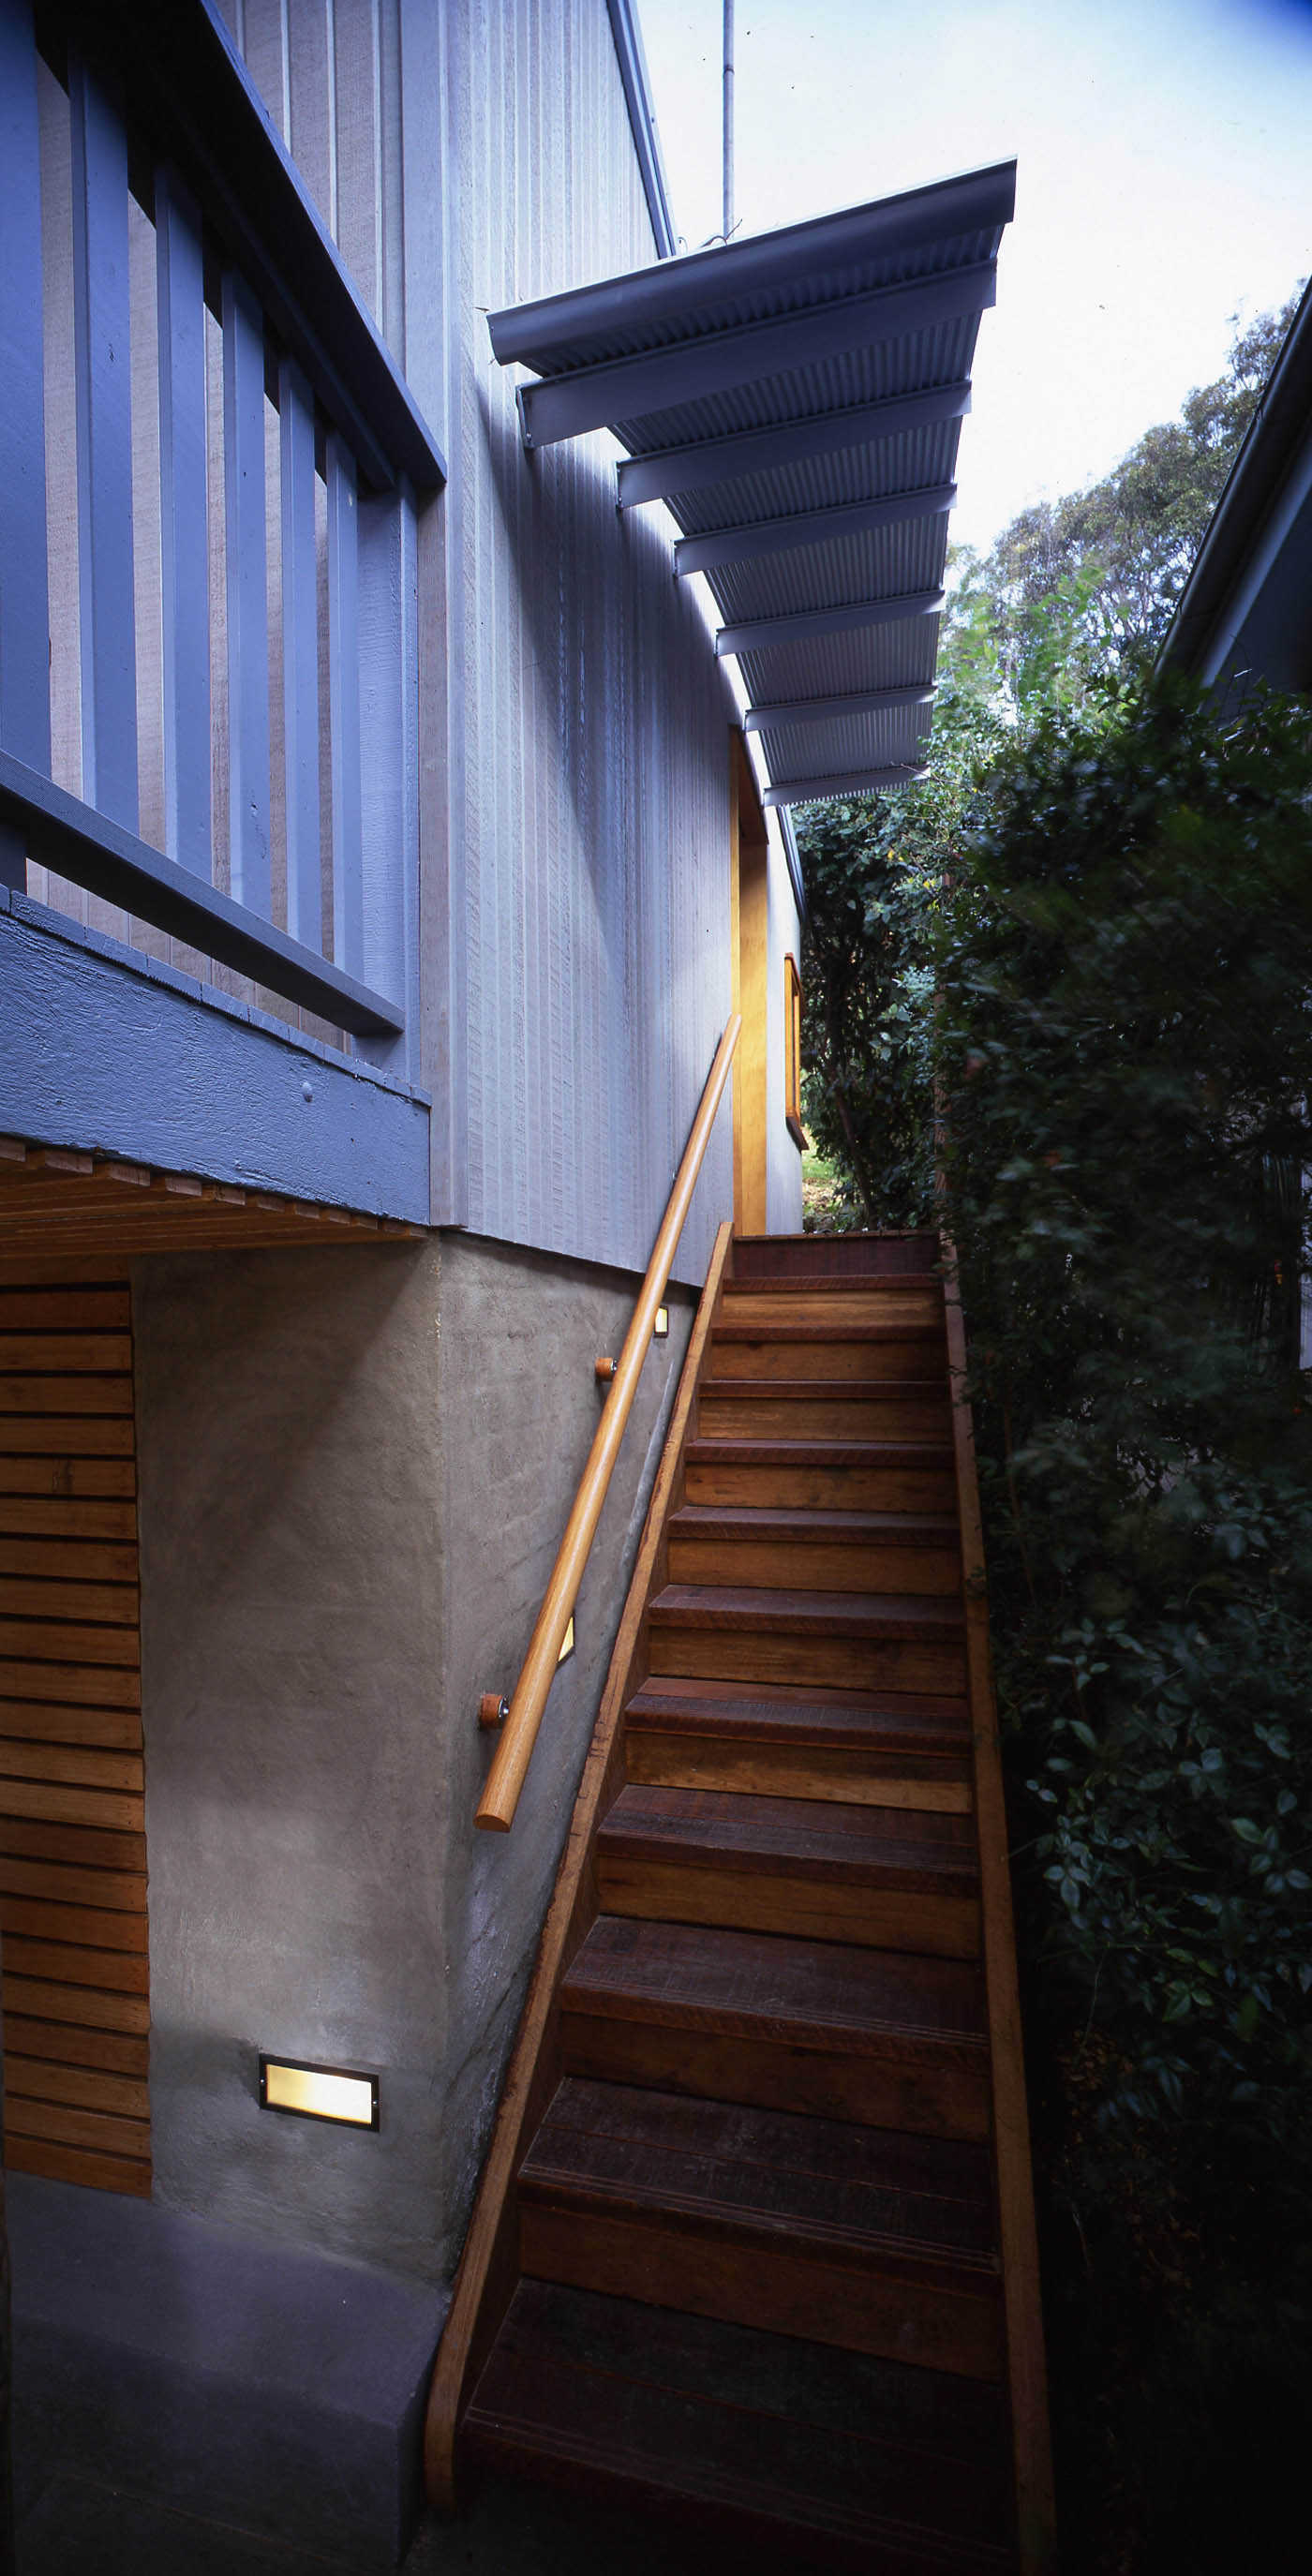 Avalon Beach House by Sydney award winning residential architecture firm Sam Crawford Architects. Timber stairs to upper level with protruding corrugated roof shading